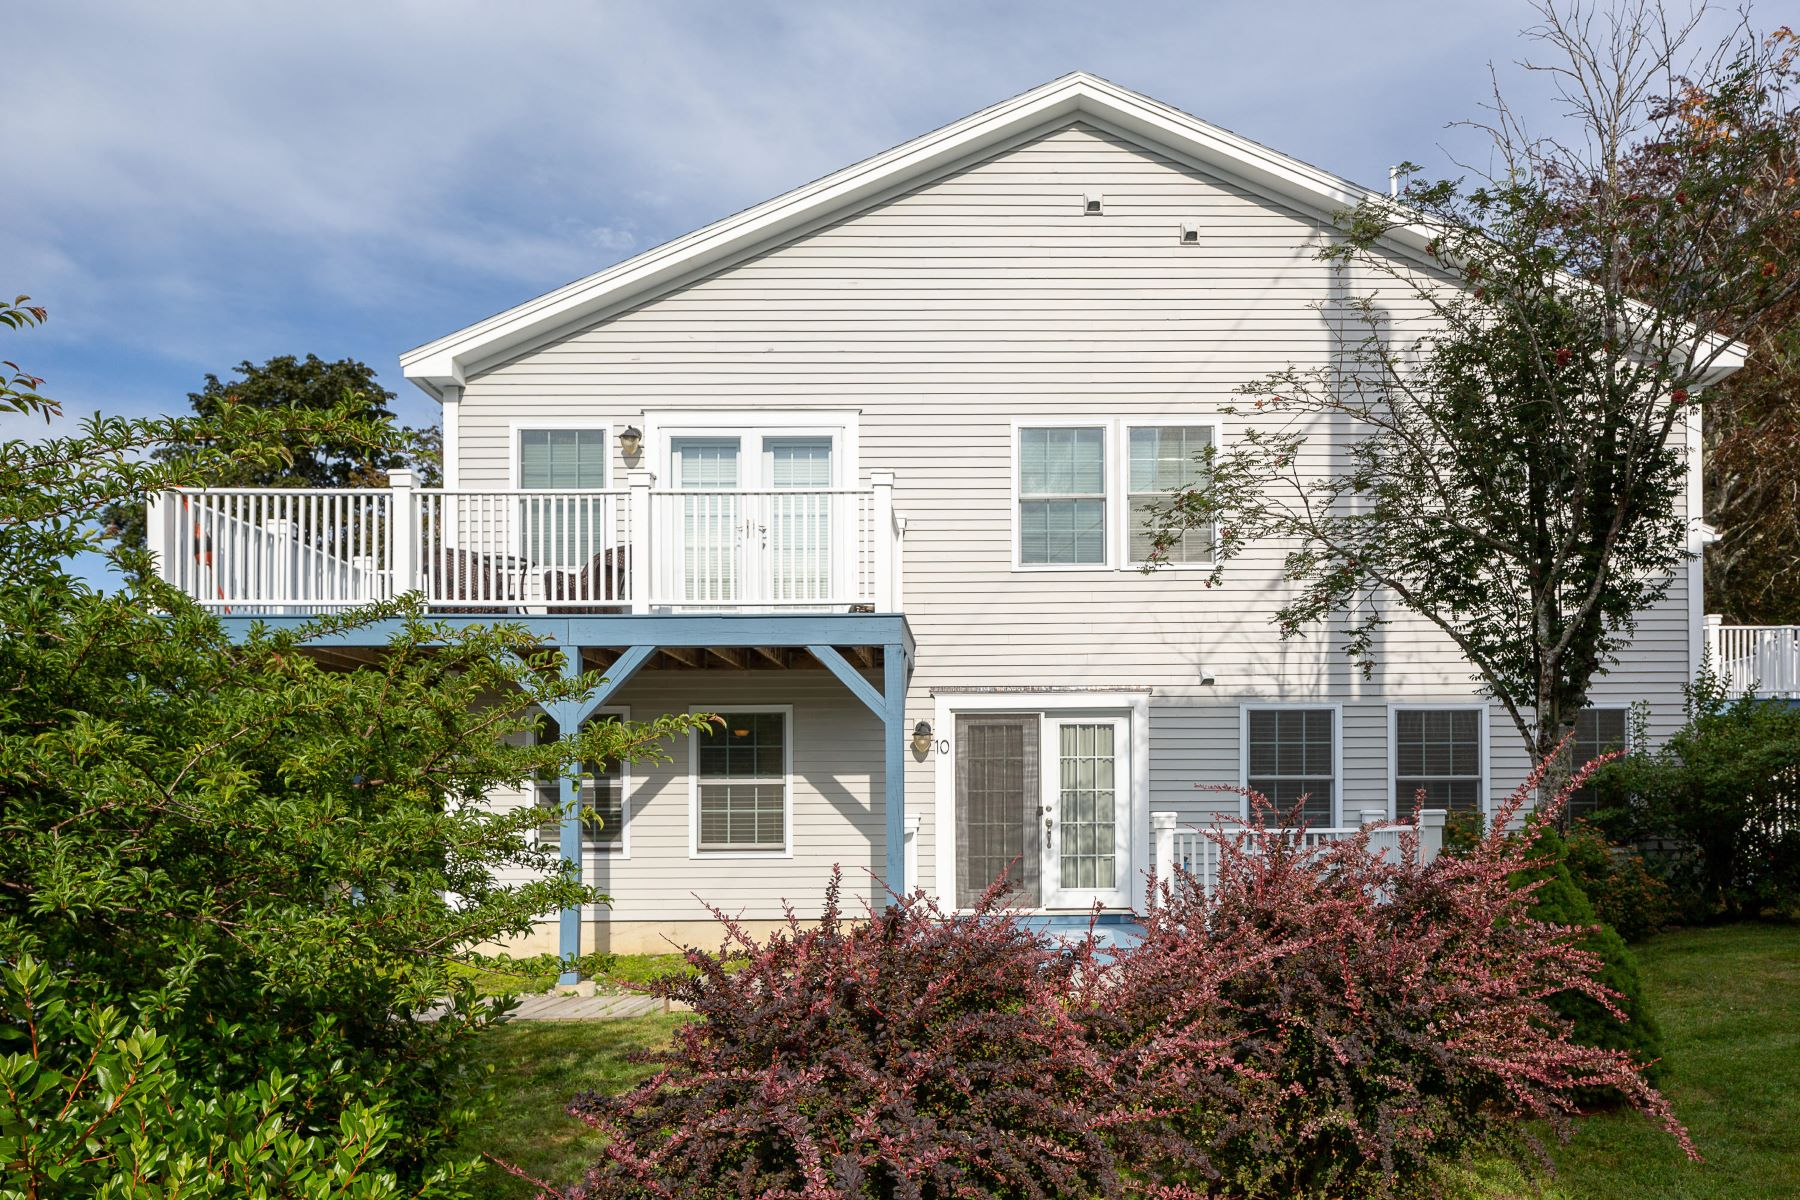 Condominiums for Sale at 10 Hilltop Drive 10 Rockport, Maine 04856 United States